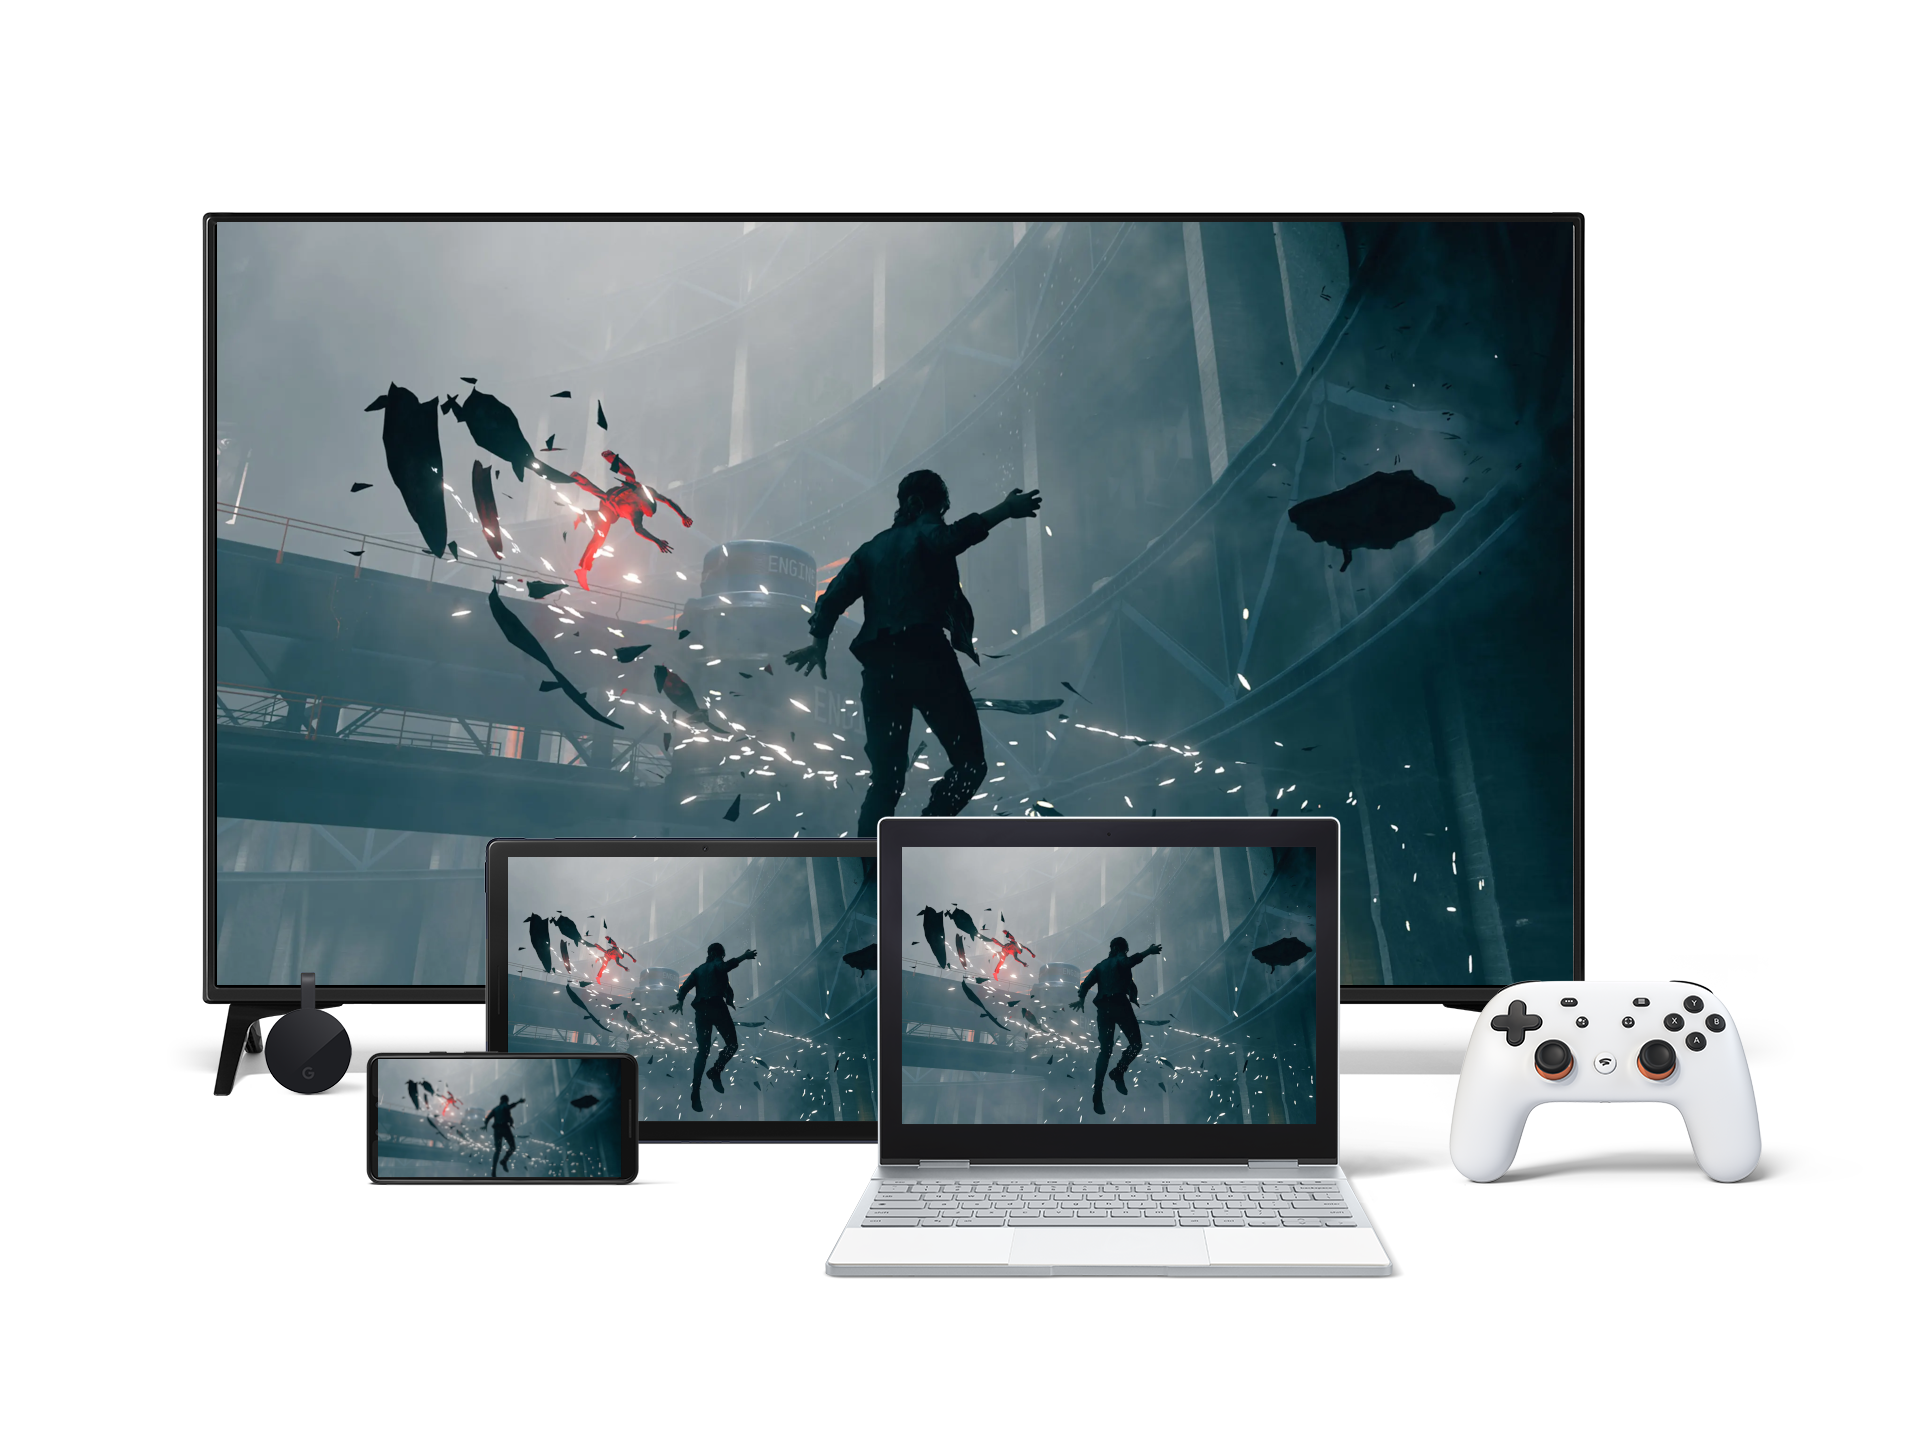 Image of the game on Stadia's devices.